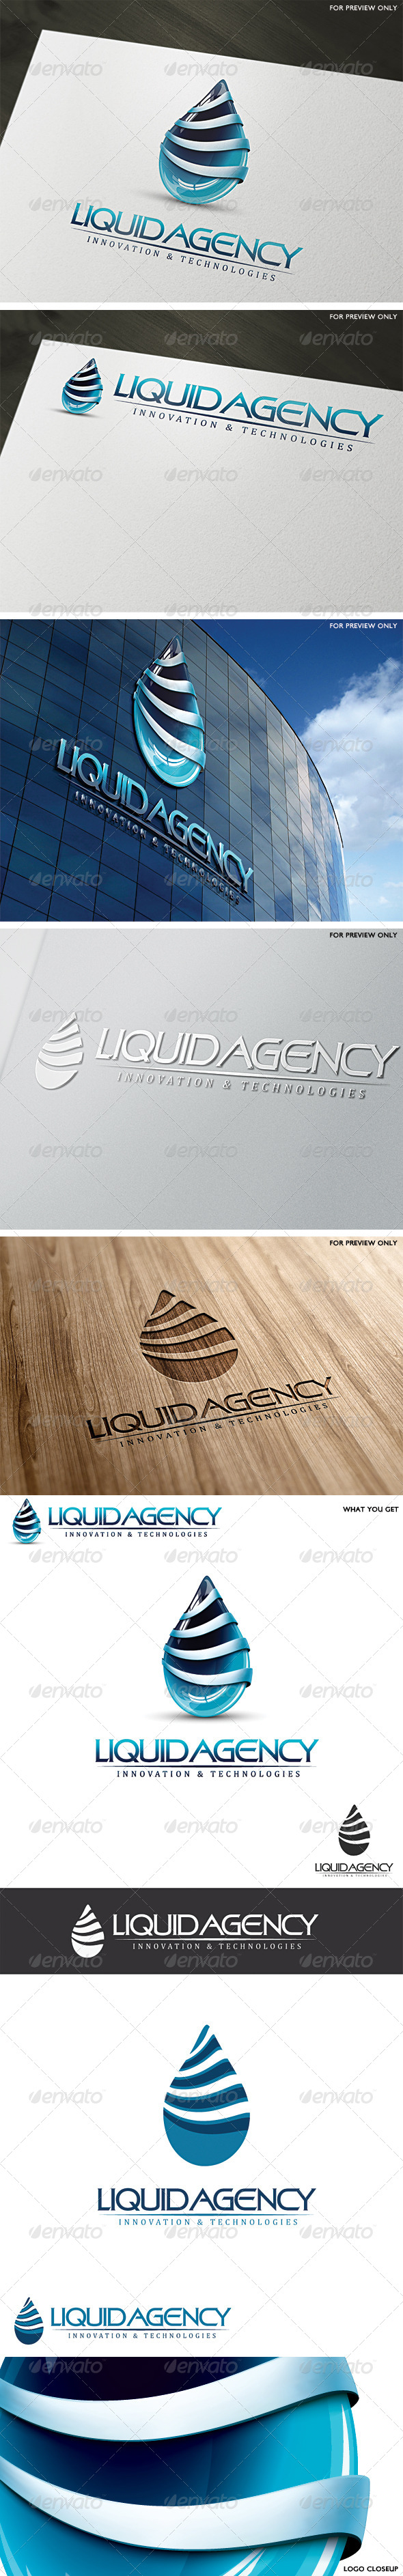 3D Liquid Agency Logo Template - 3d Abstract